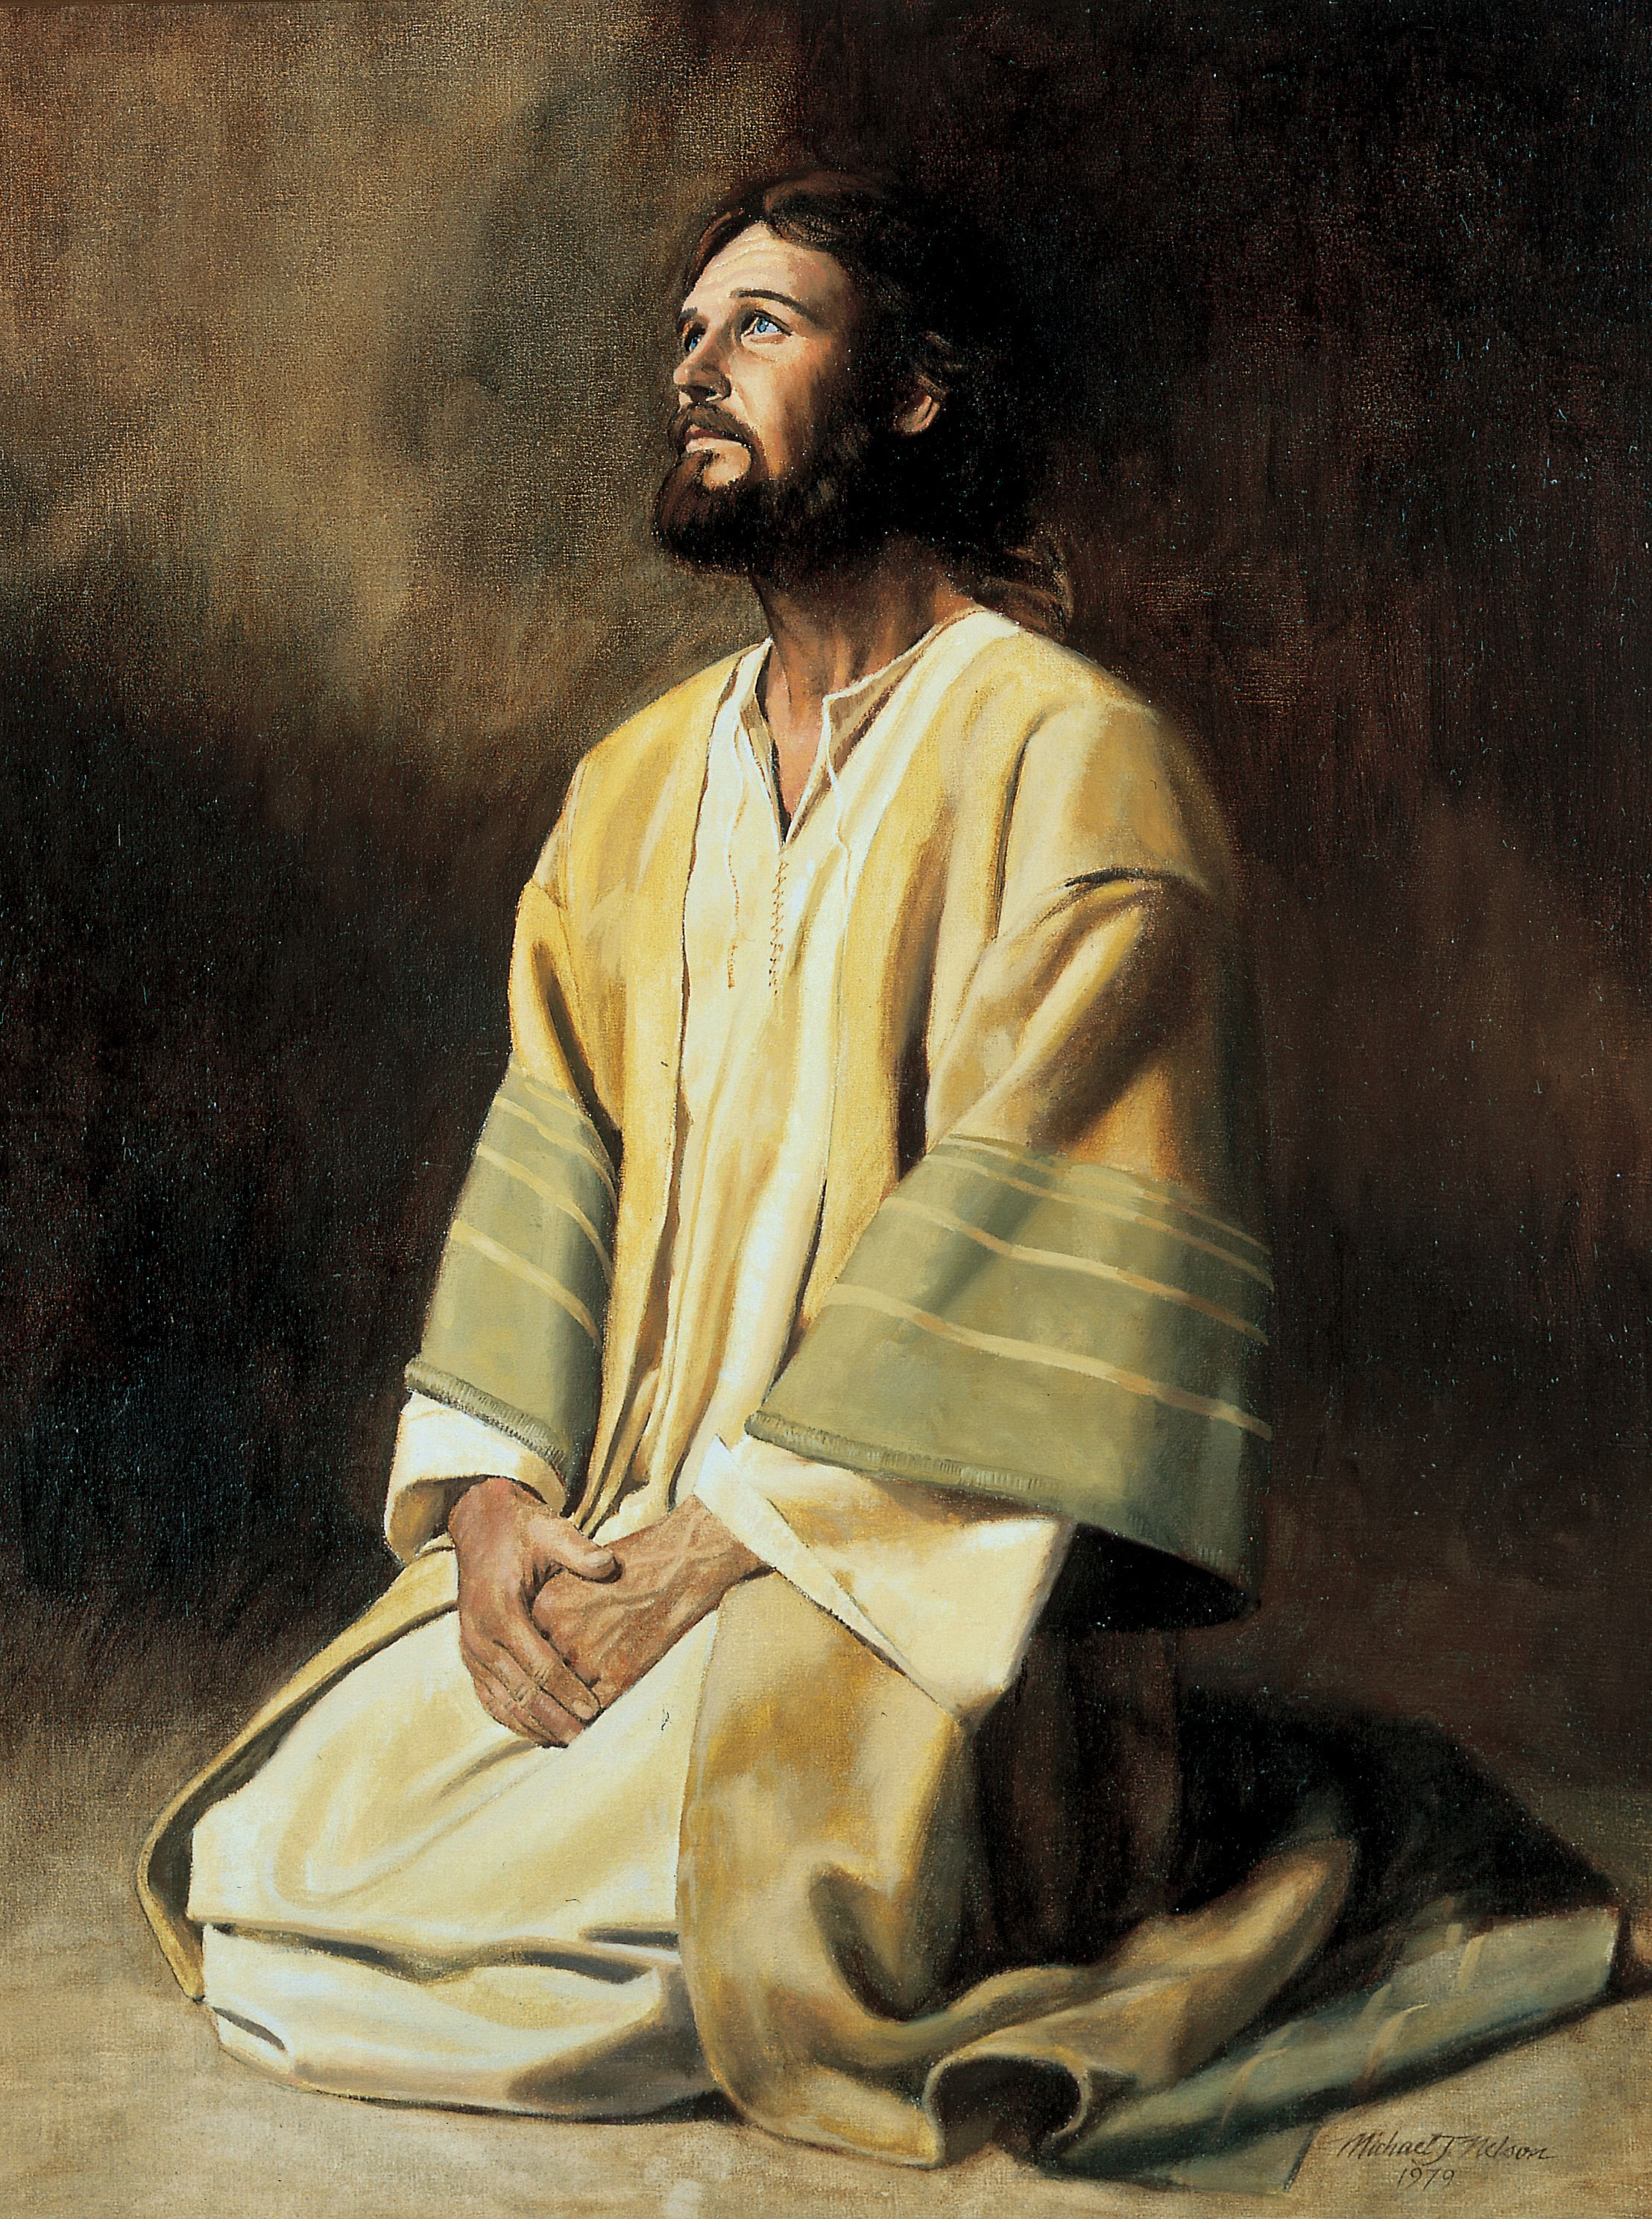 Jesus Kneeling in Prayer and Meditation, by Michael Jarvis Nelson